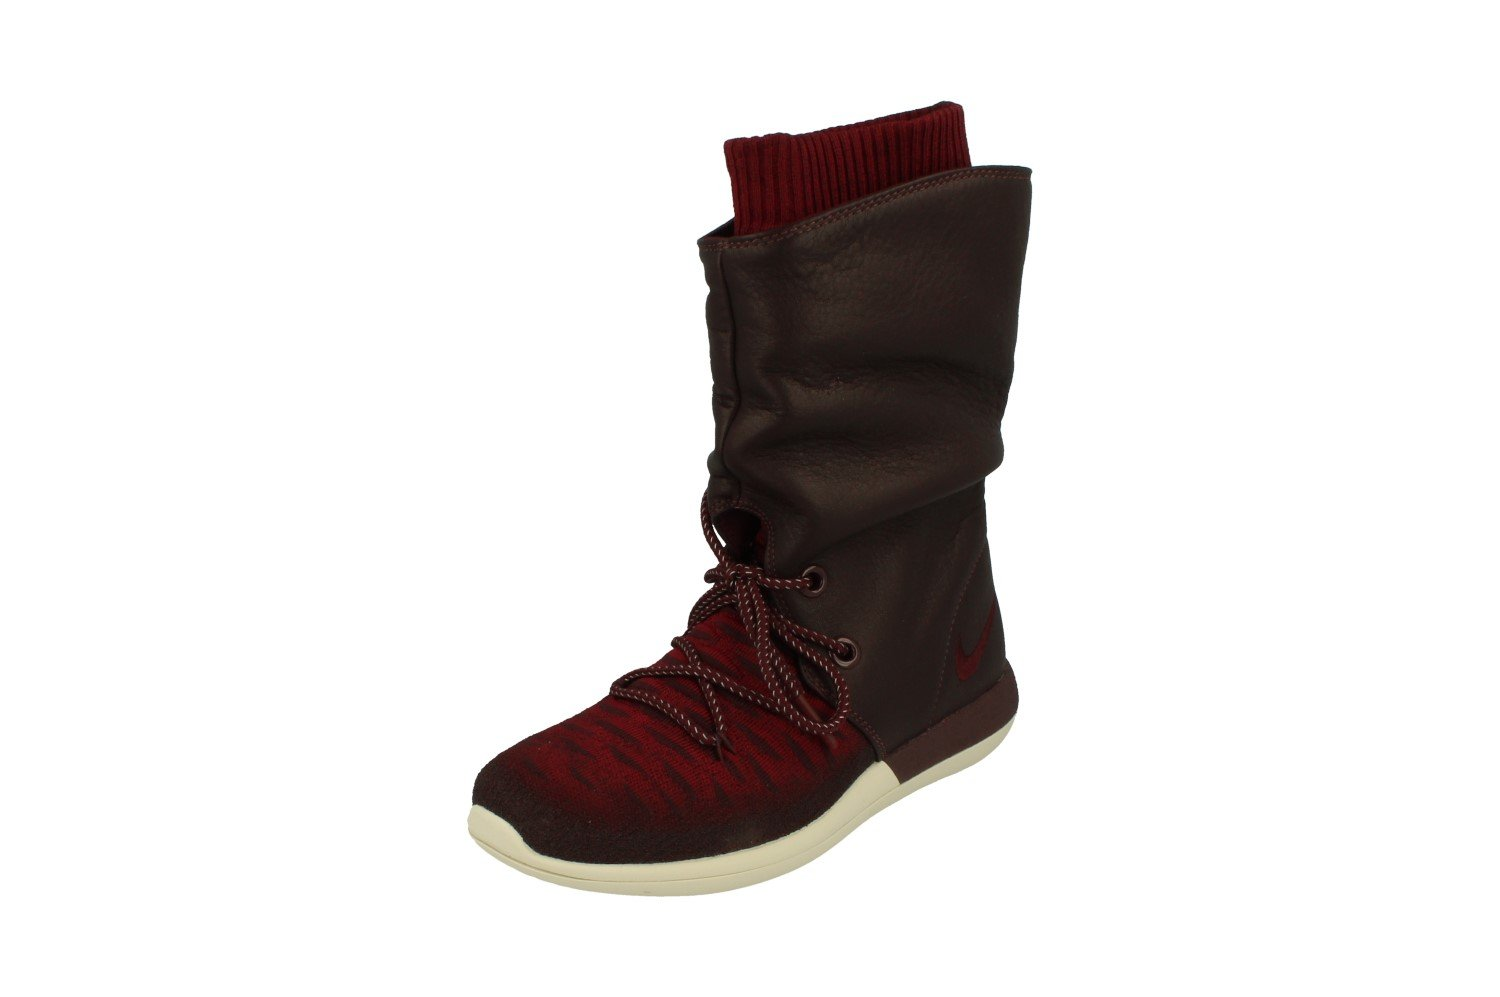 NIKE Womens Roshe Two Hi Flyknit Trainers 861708 Sneakers Boots B01M6WYK6J 10.5 B(M) US|Deep Burgundy 600